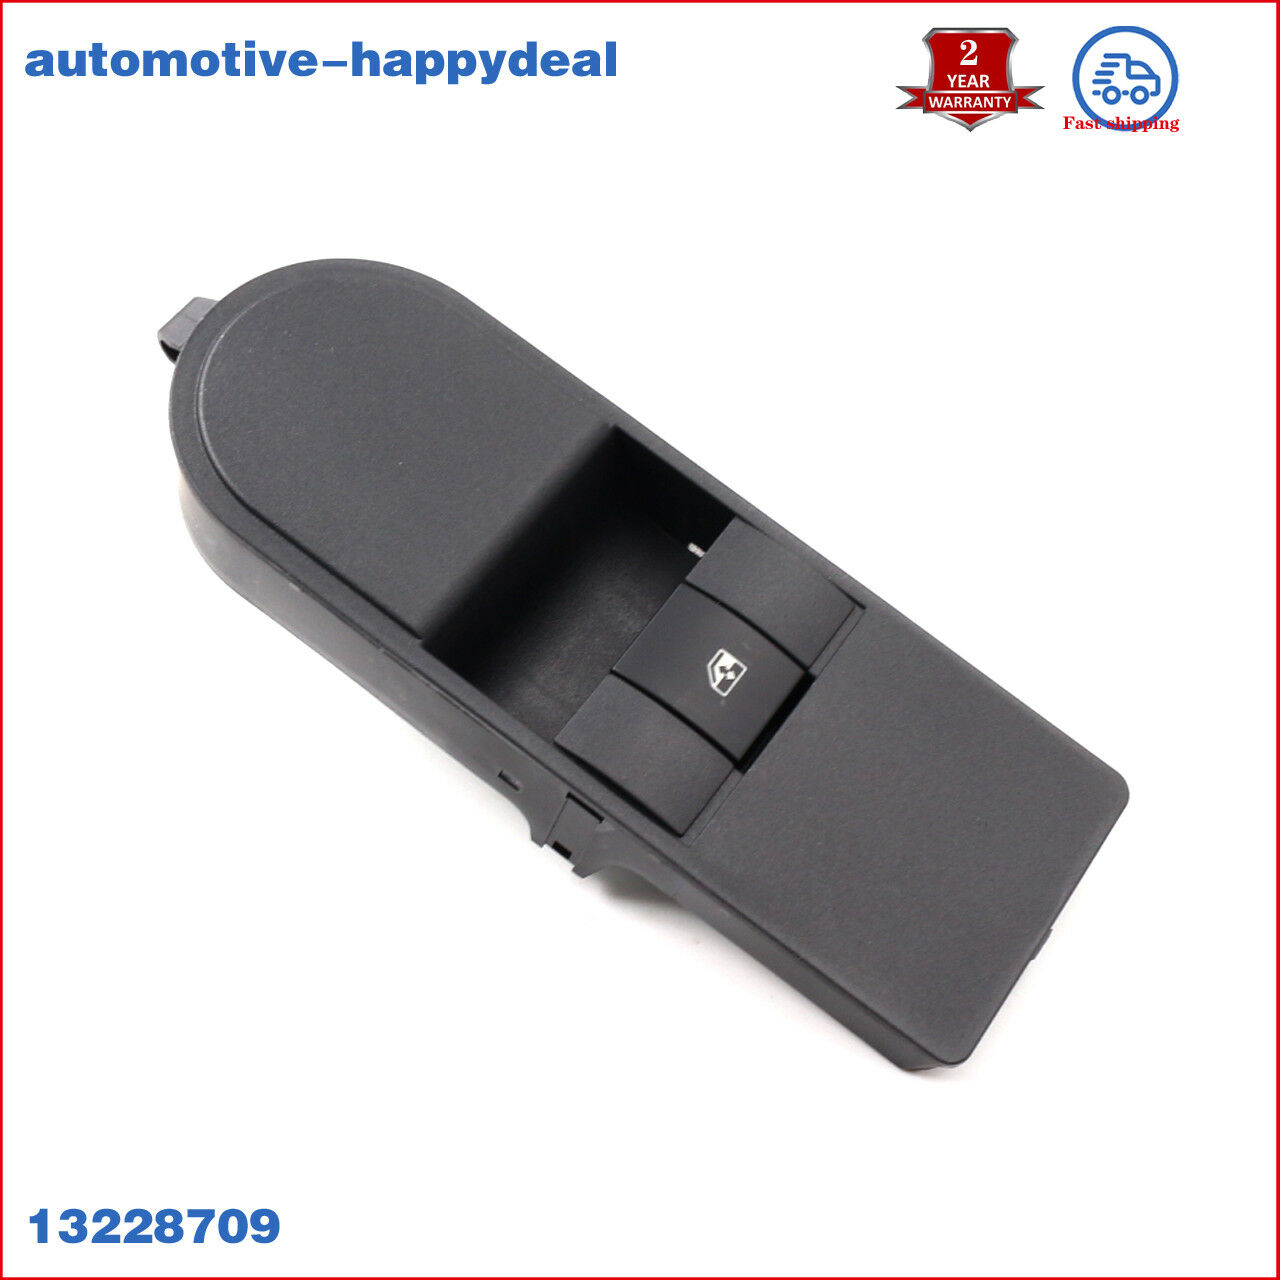 VAUXHALL ASTRA H FRONT PASSENGER SIDE WINDOW SWITCH 2004 TO 2010